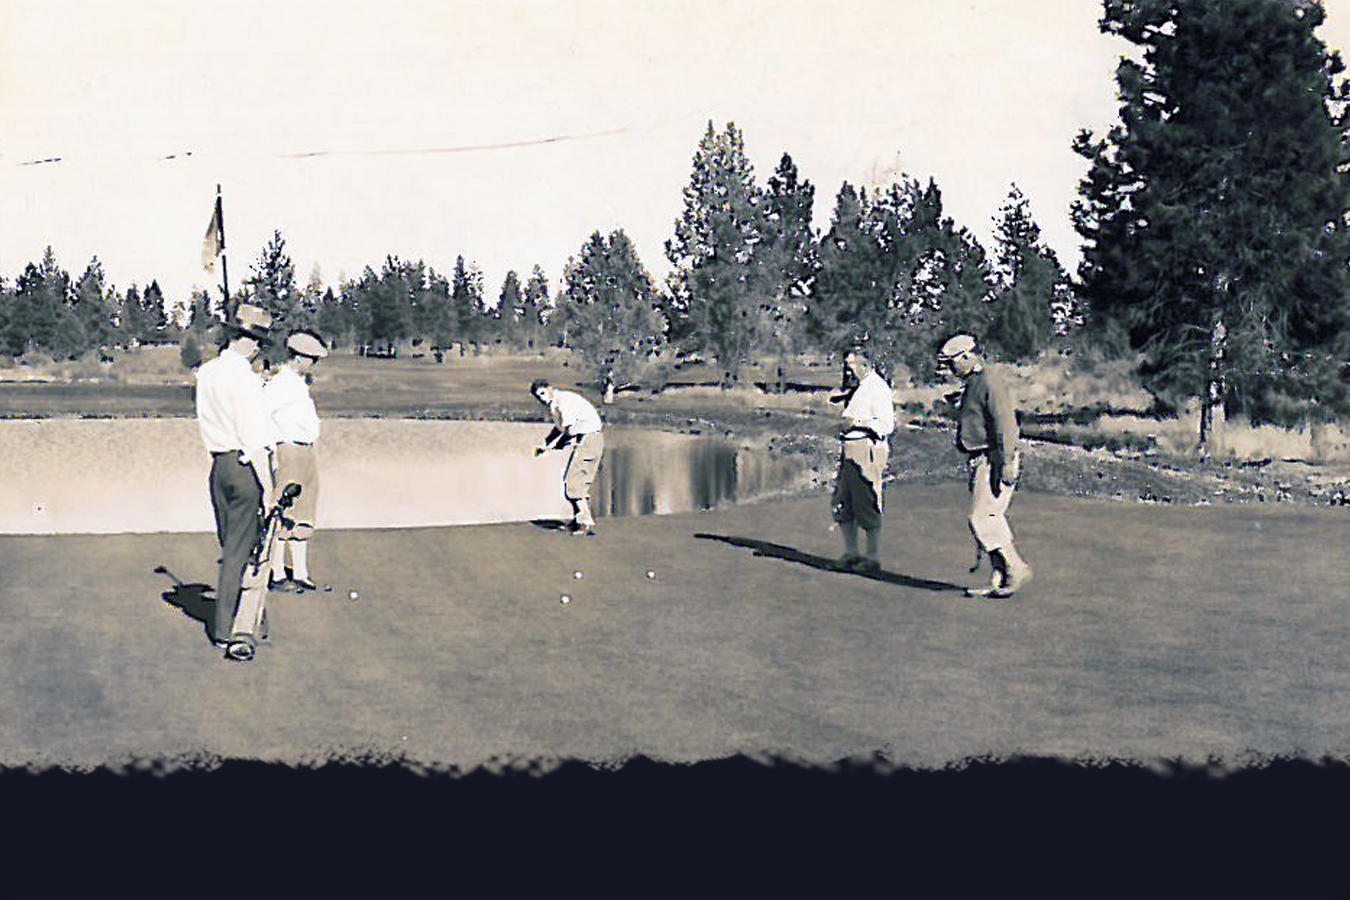 A foursome finishes putting on #11, which at the time of this photo was #7 on the original 9-hole course.